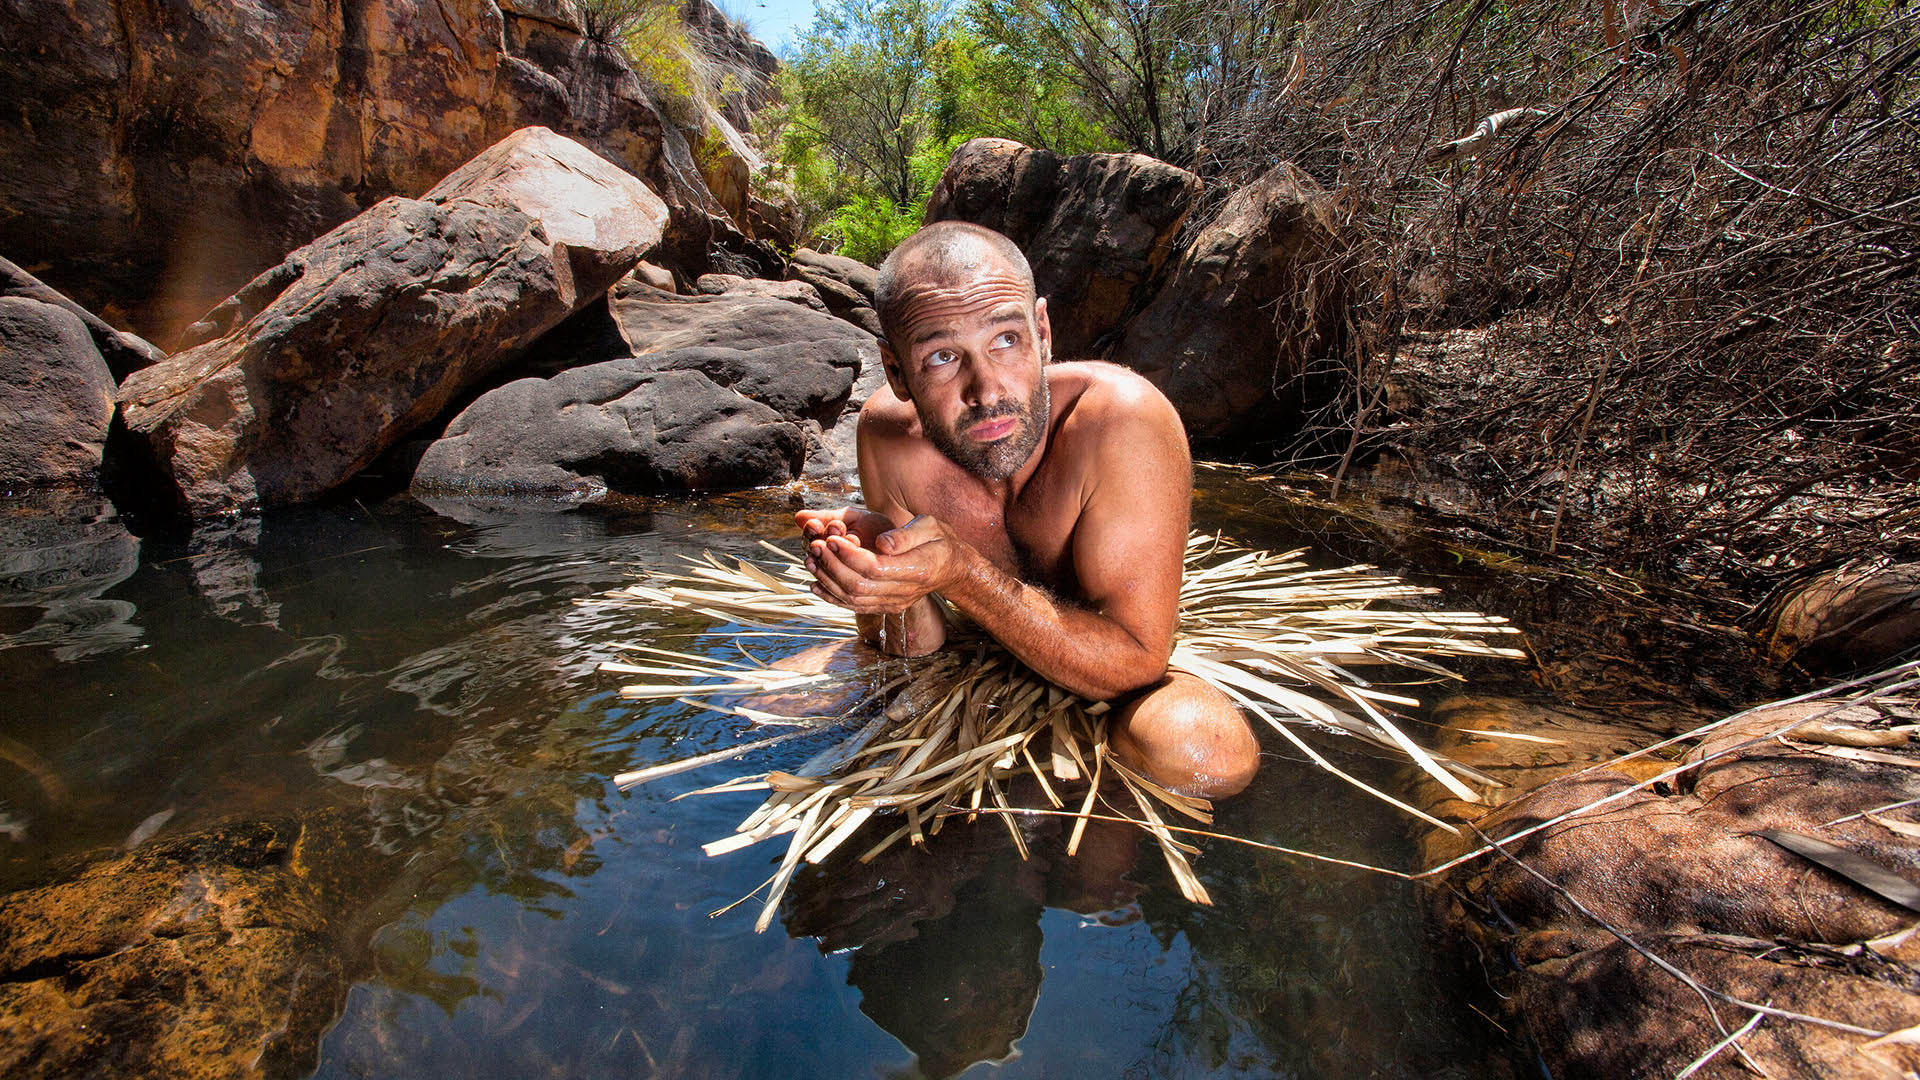 Ed Stafford: Into the Unknown - Watch Episodes on Philo